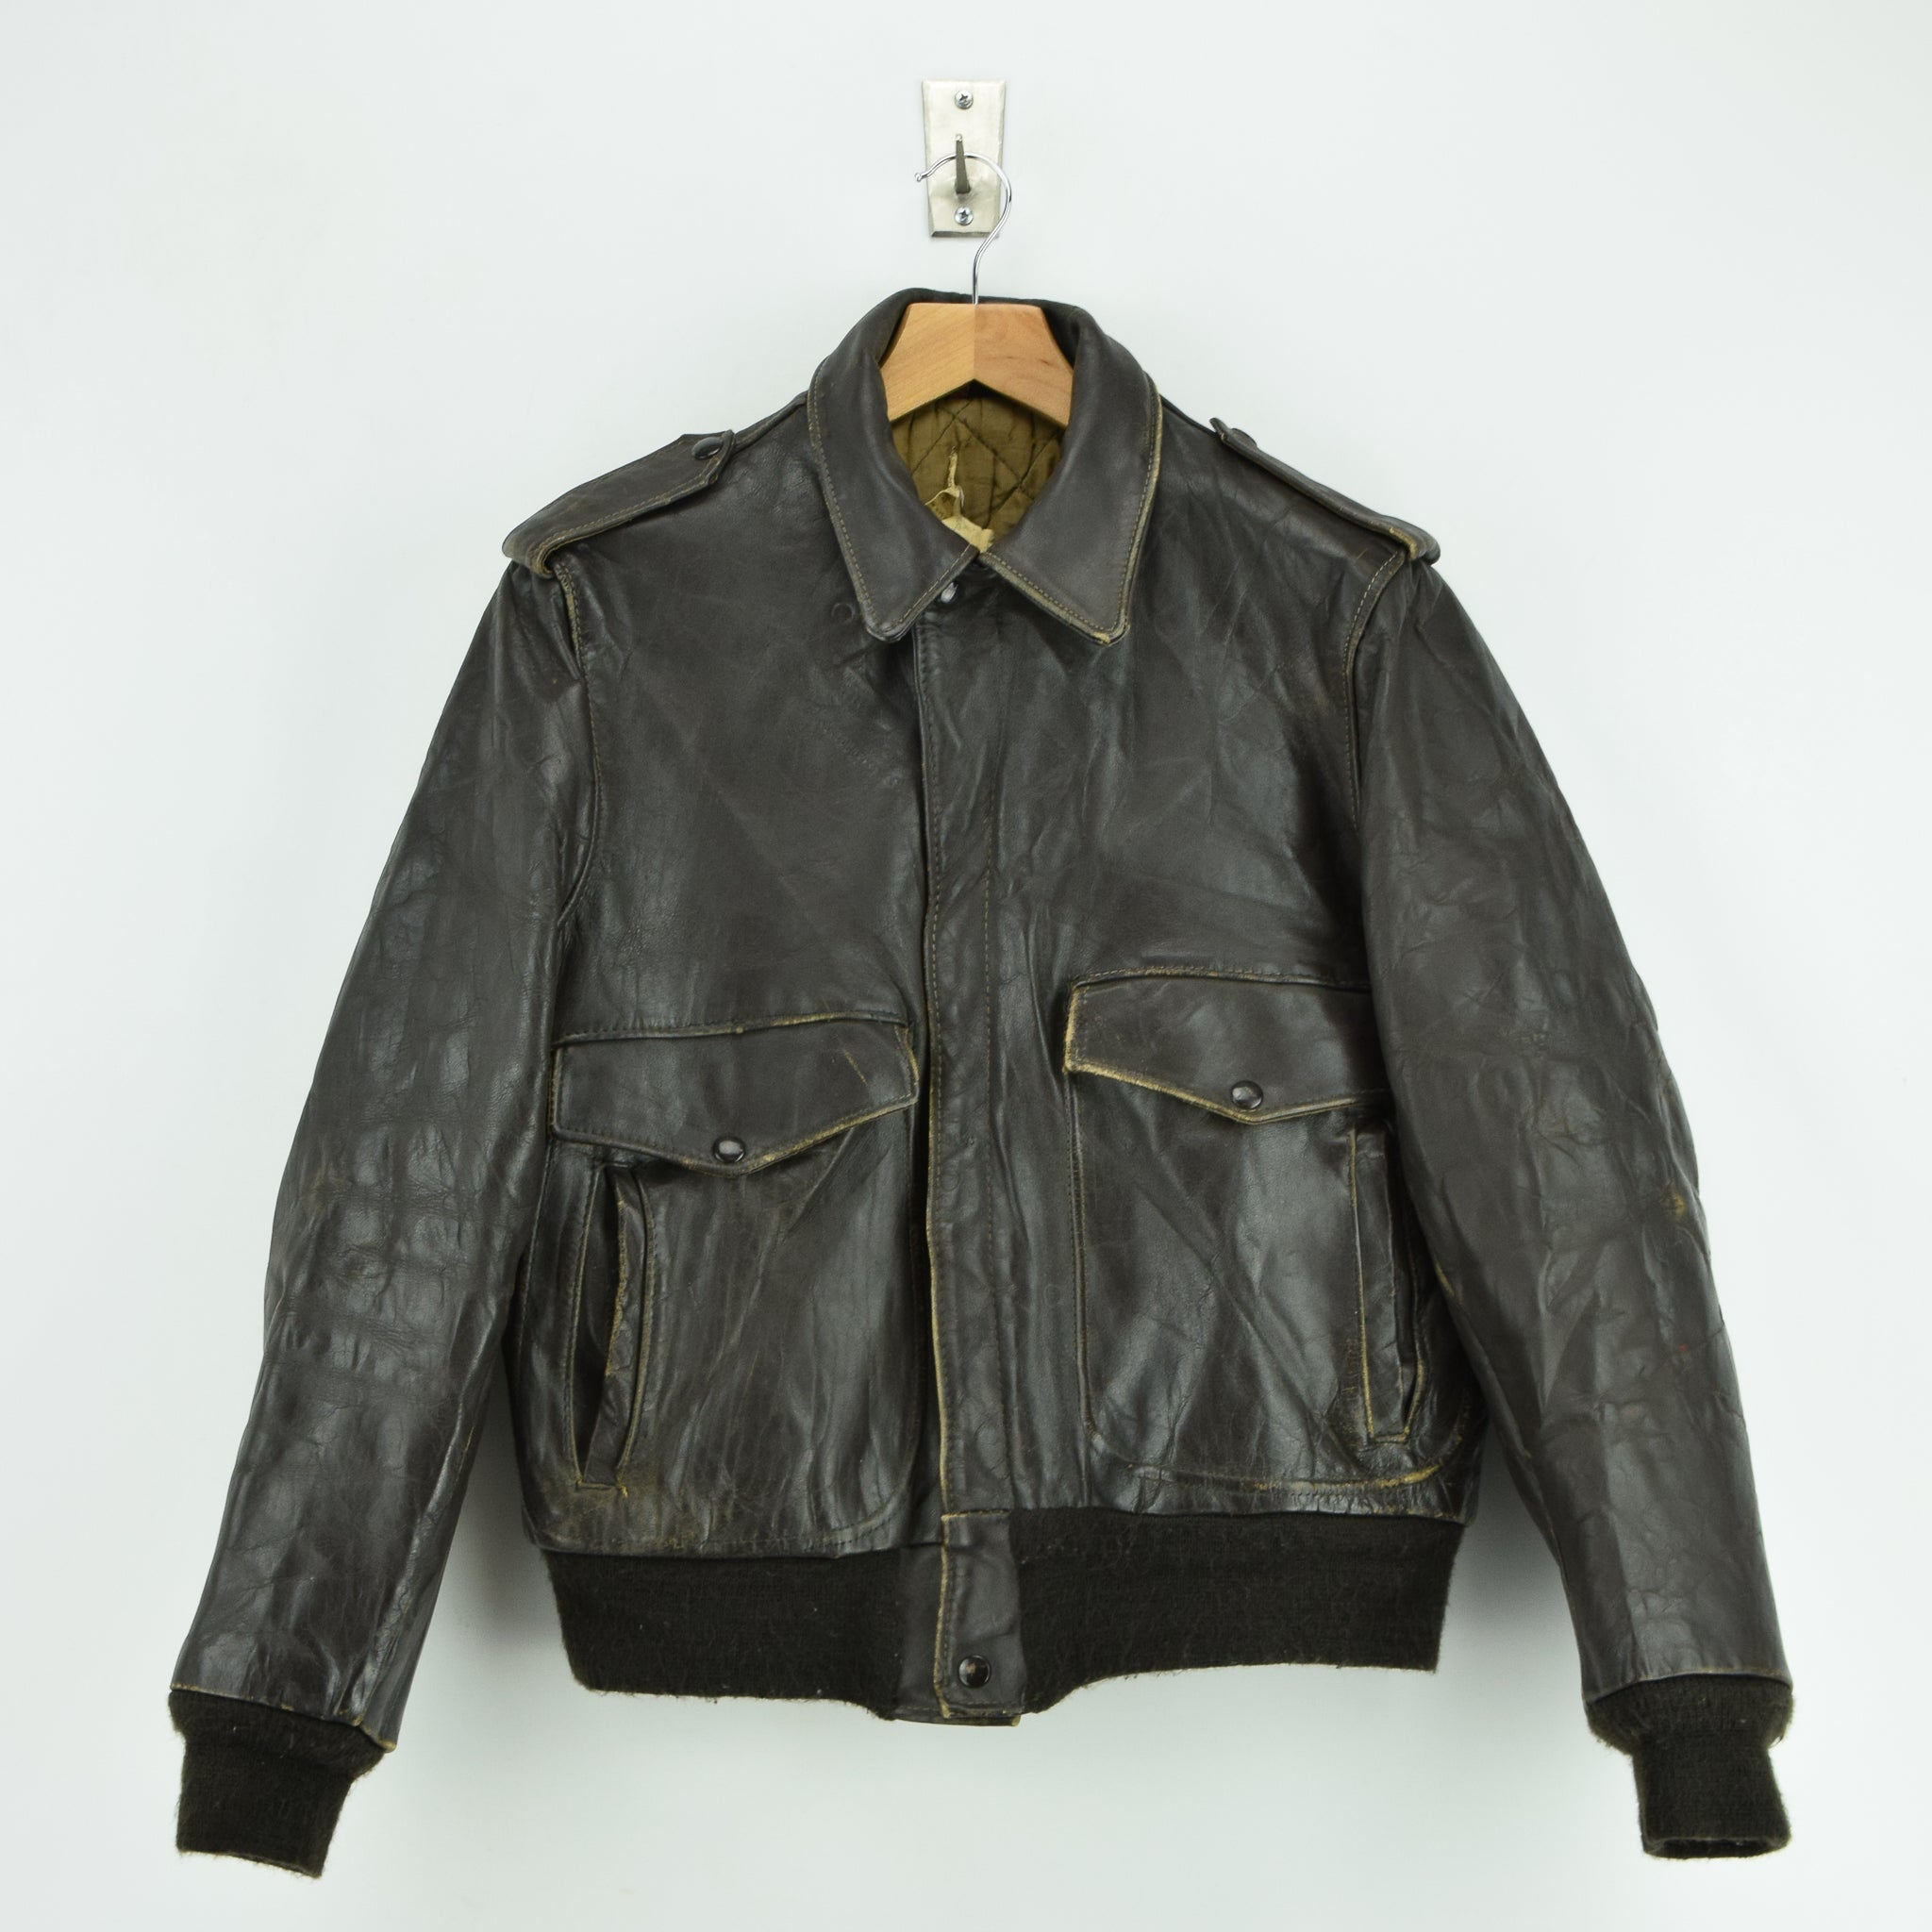 570254a6969 Vintage Schott IS-674-MS A-2 Brown Leather Flight Bomber Jacket Usa ...